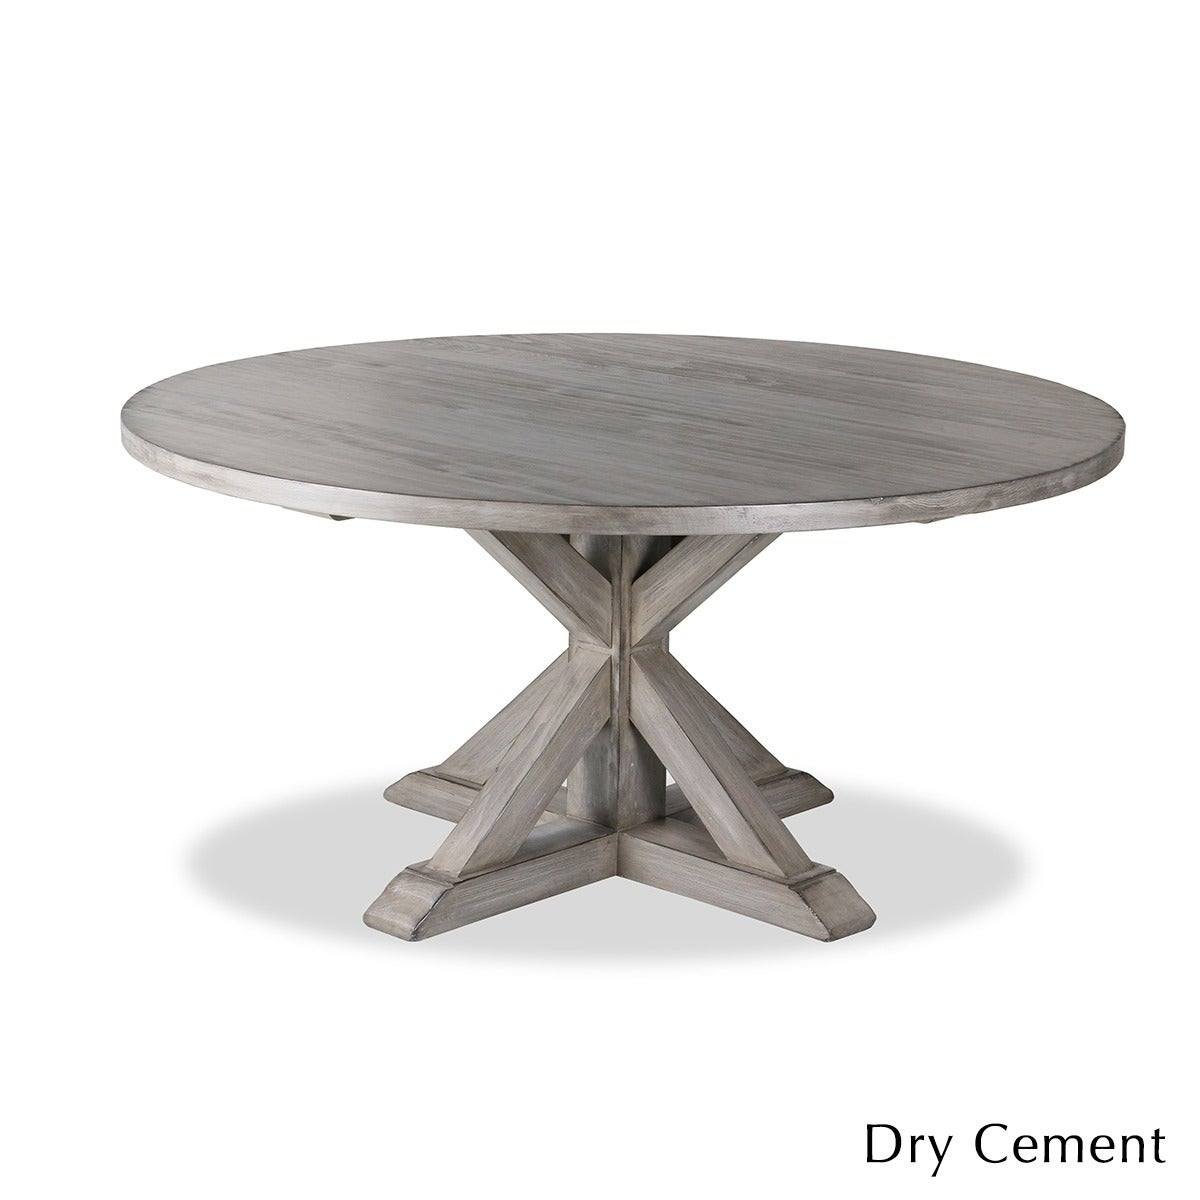 Shop La Phillippe Reclaimed Wood Round Dining Table Free Shipping - Round pedestal dining table gray